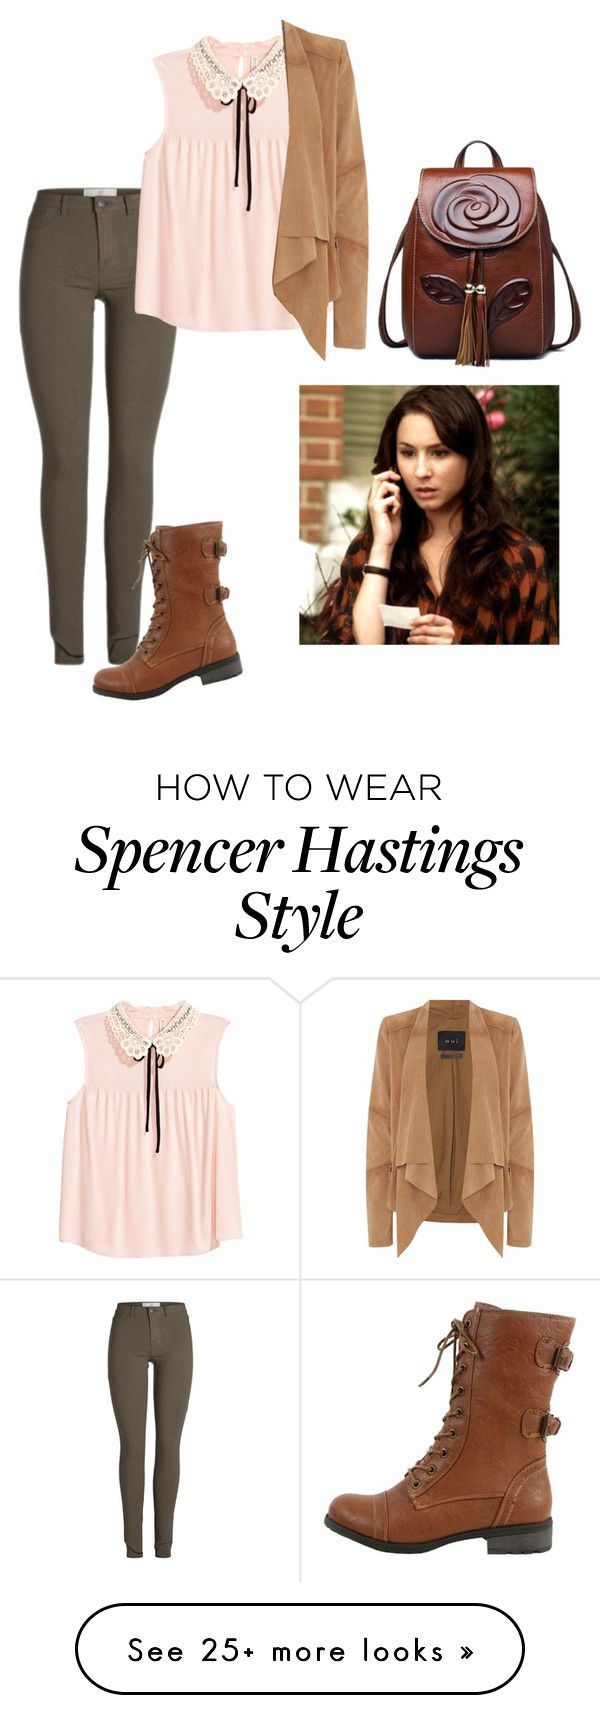 Related spencer hastings living room hanna marin kitchen -  Spencer Hastings By Junebug24 1 On Polyvore Featuring Oui And Wild Diva